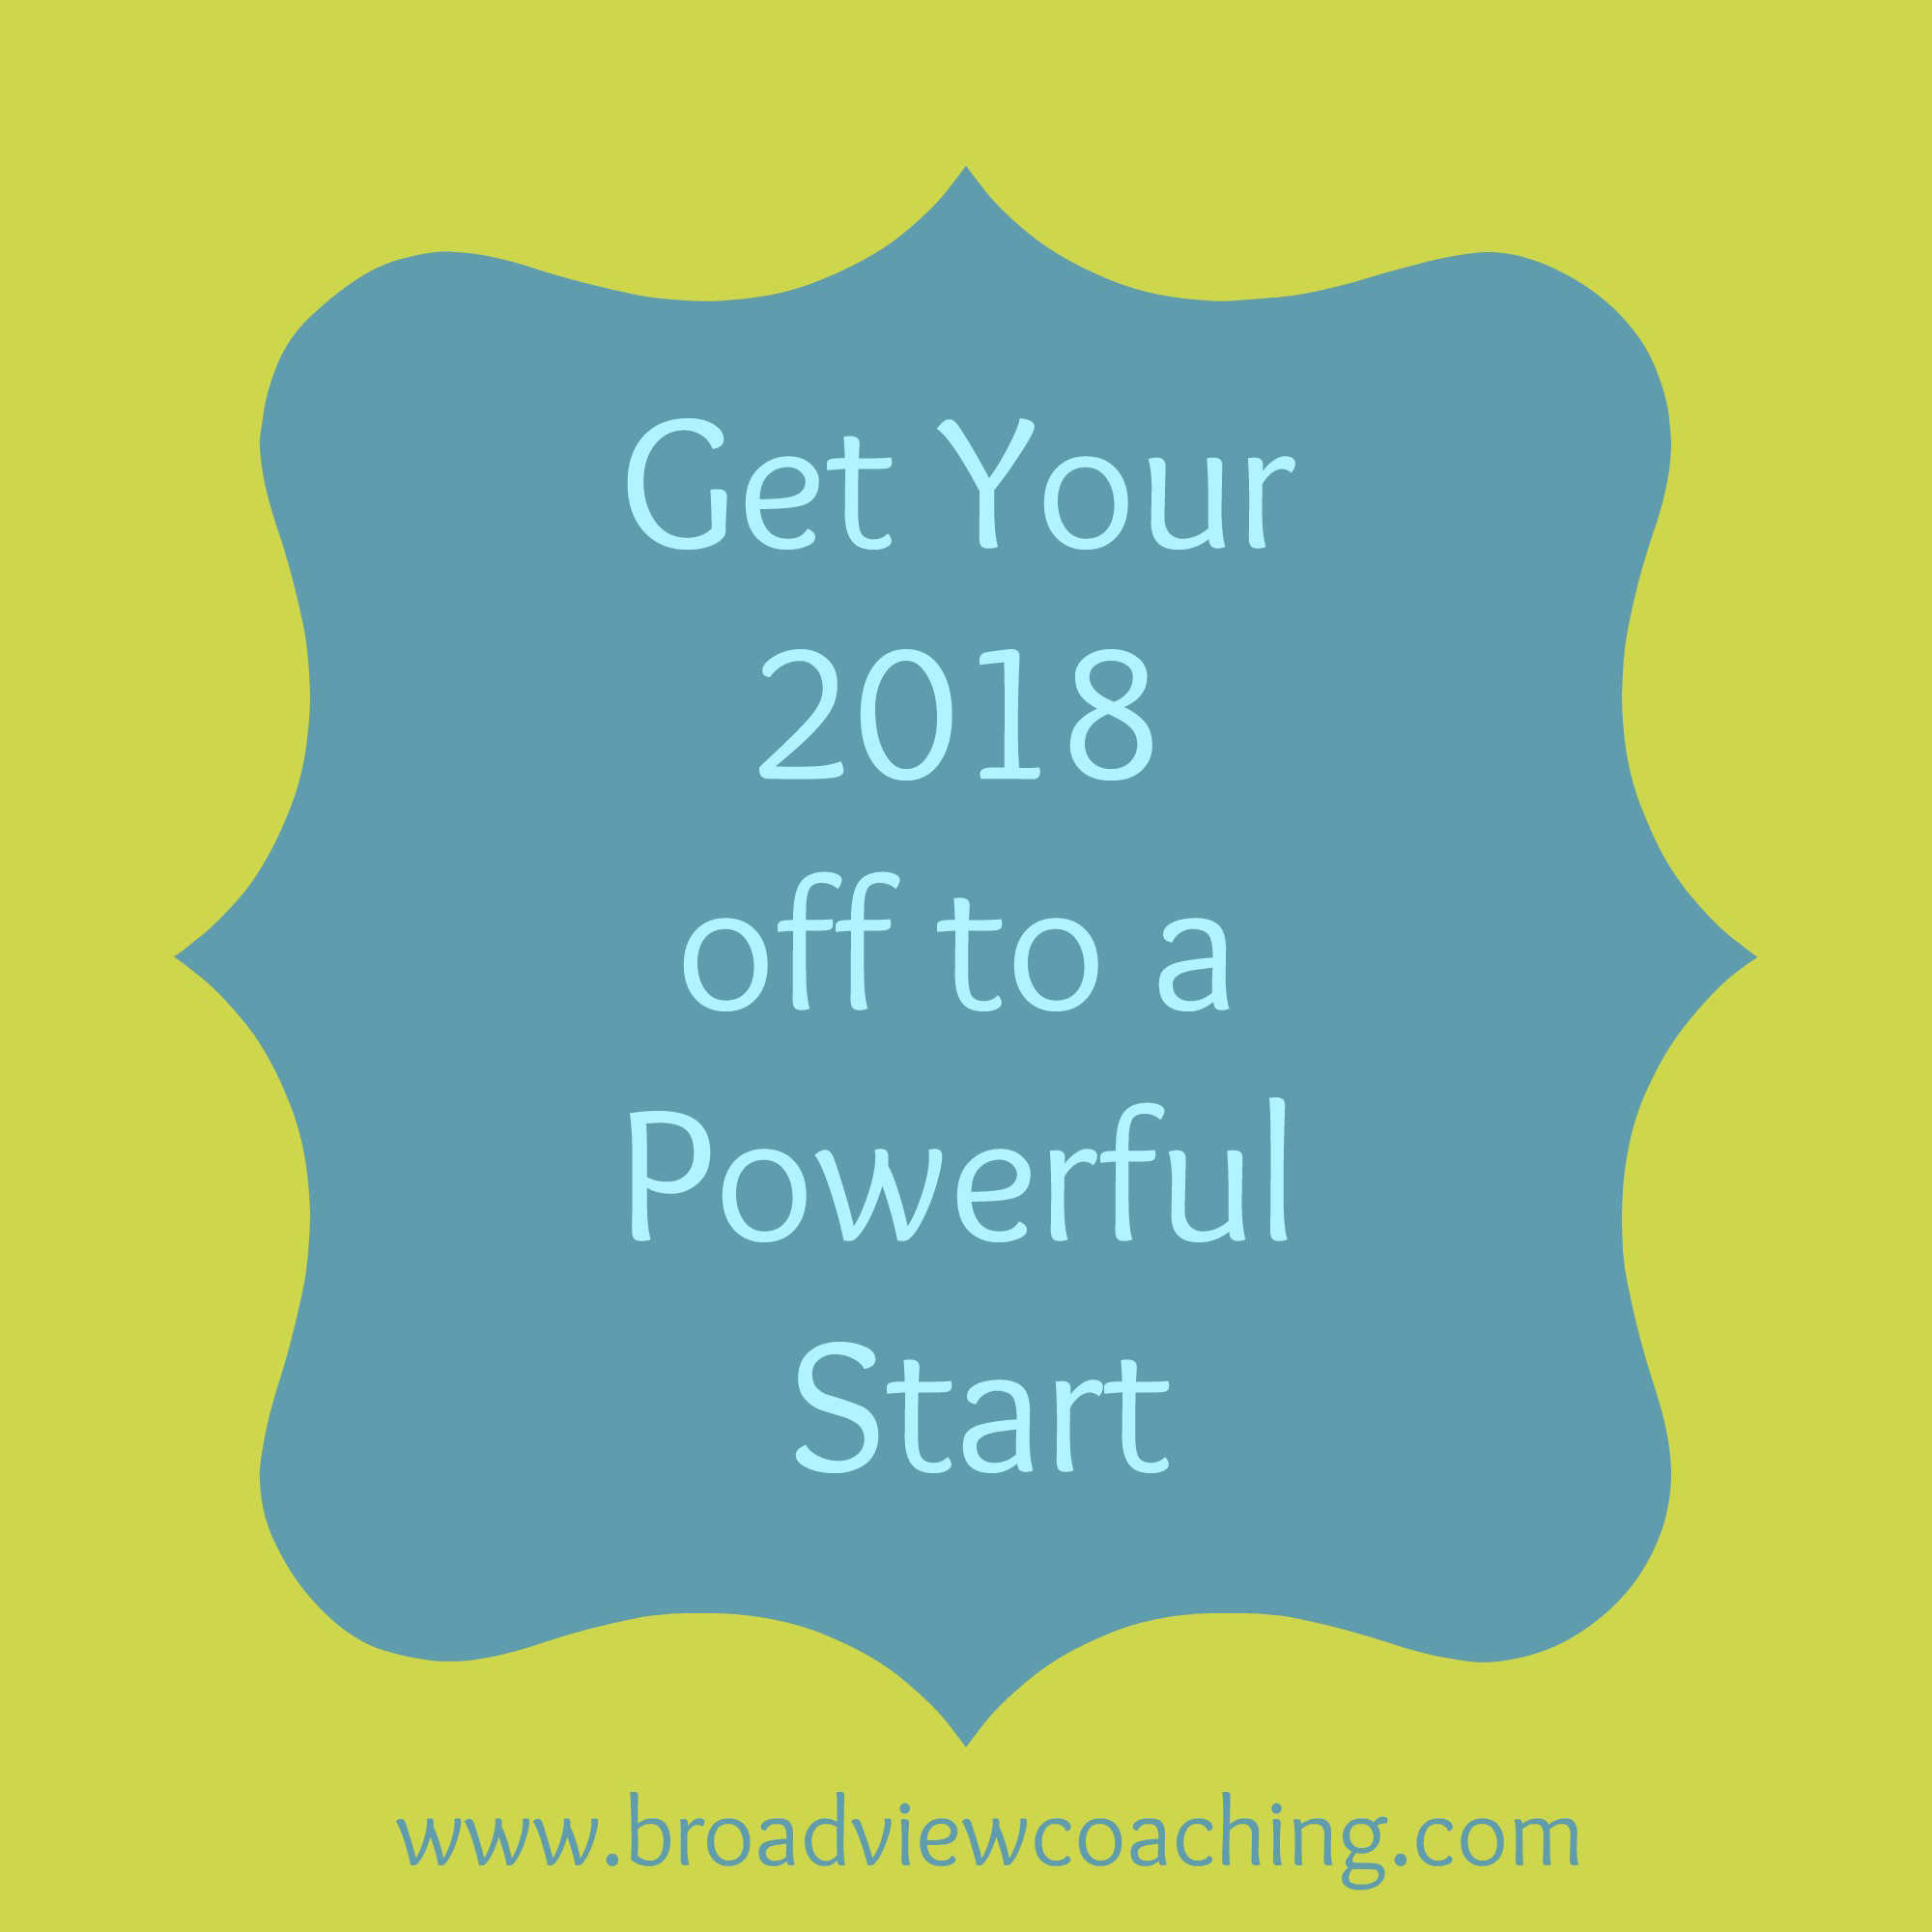 Get your 2018 off to a powerful start